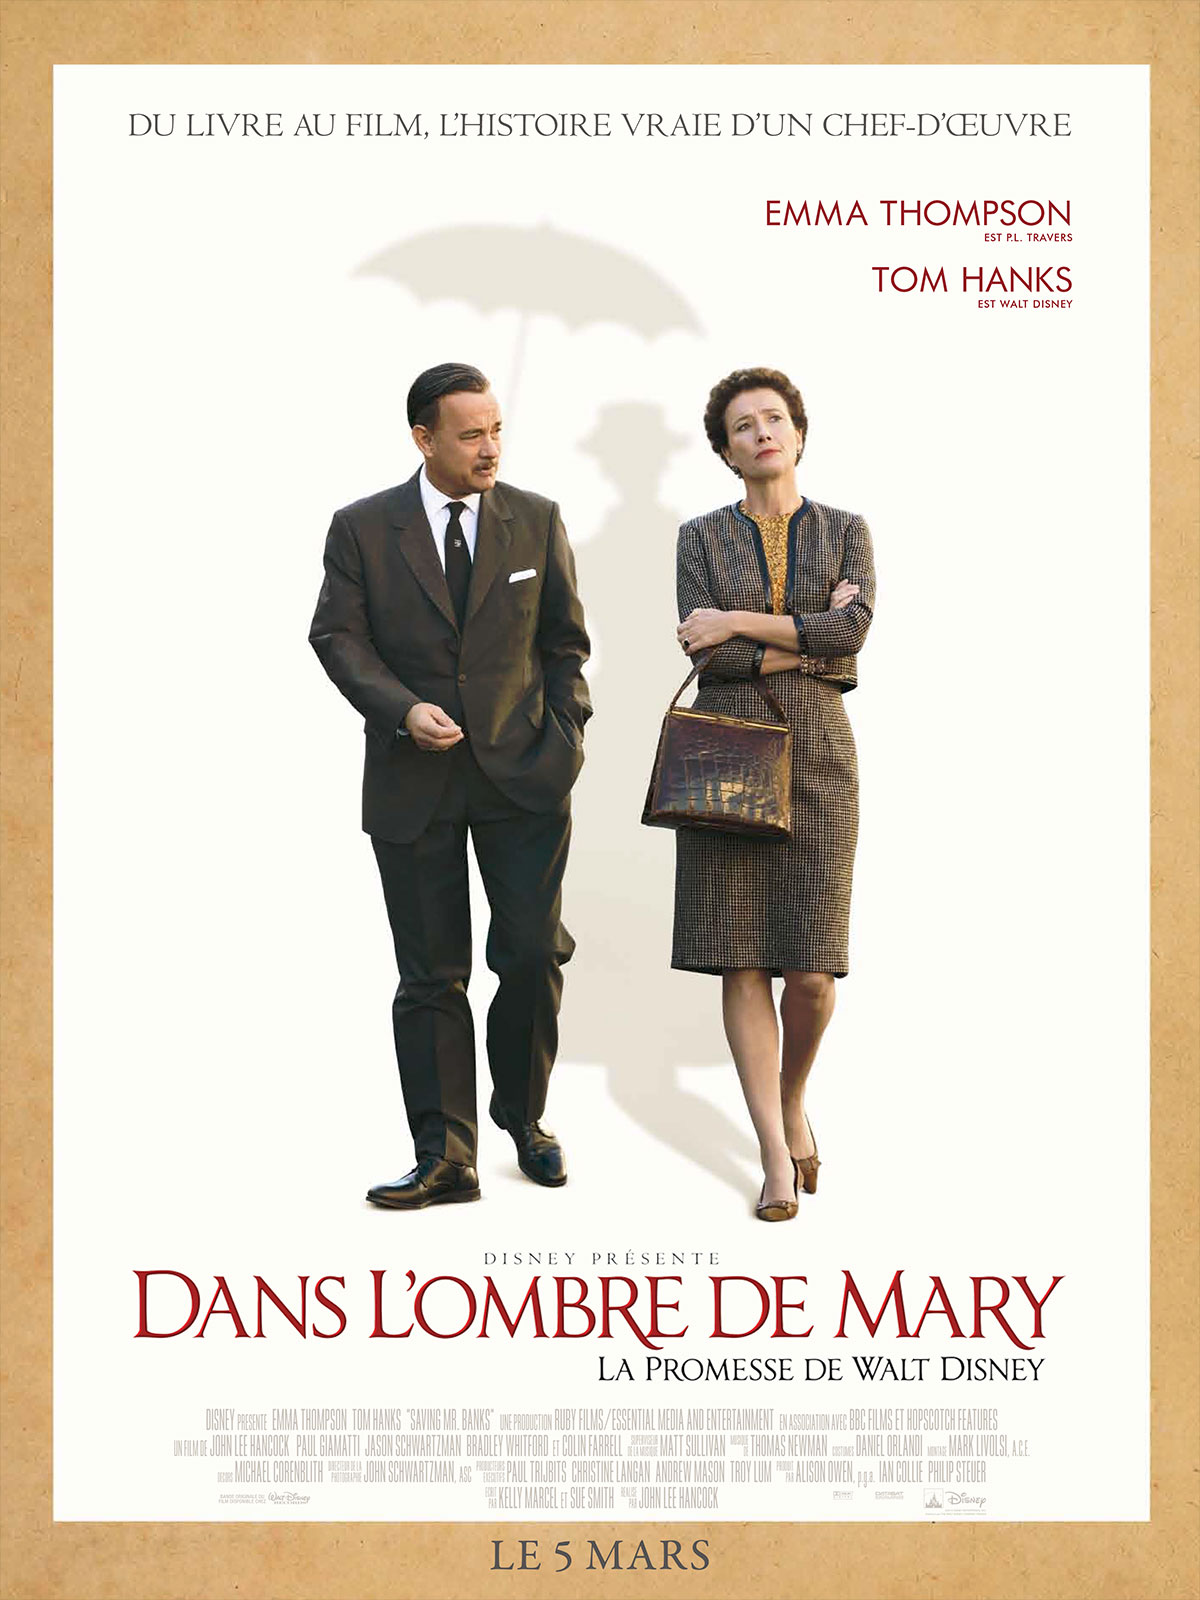 Dans l'ombre de Mary – La promesse de Walt Disney streaming film